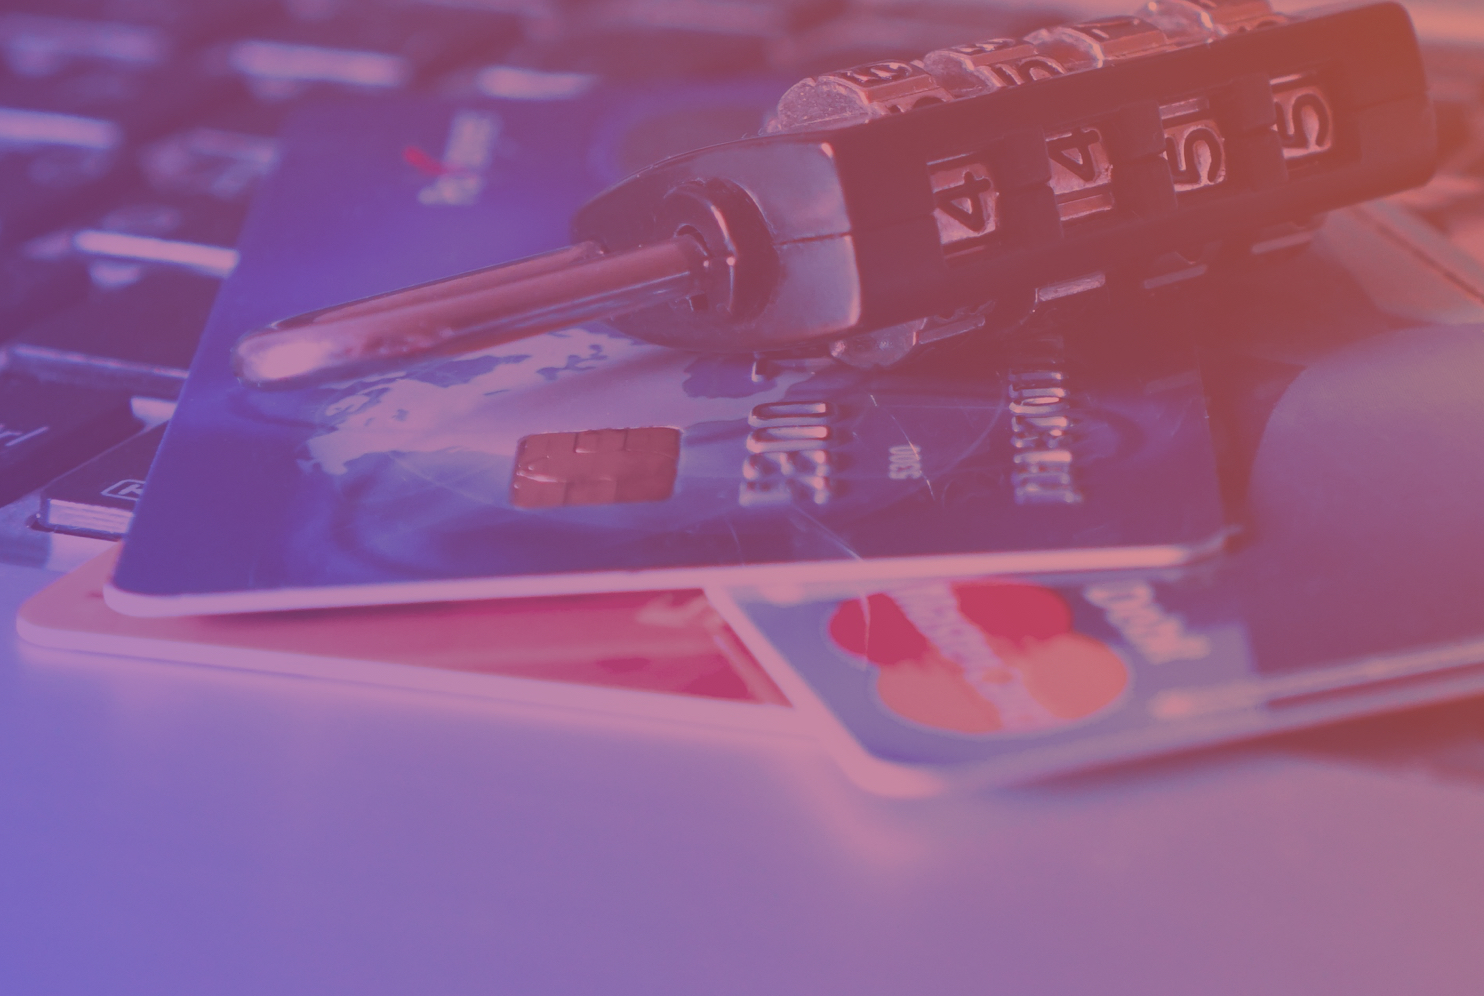 What You Need To Know About EMV Cards